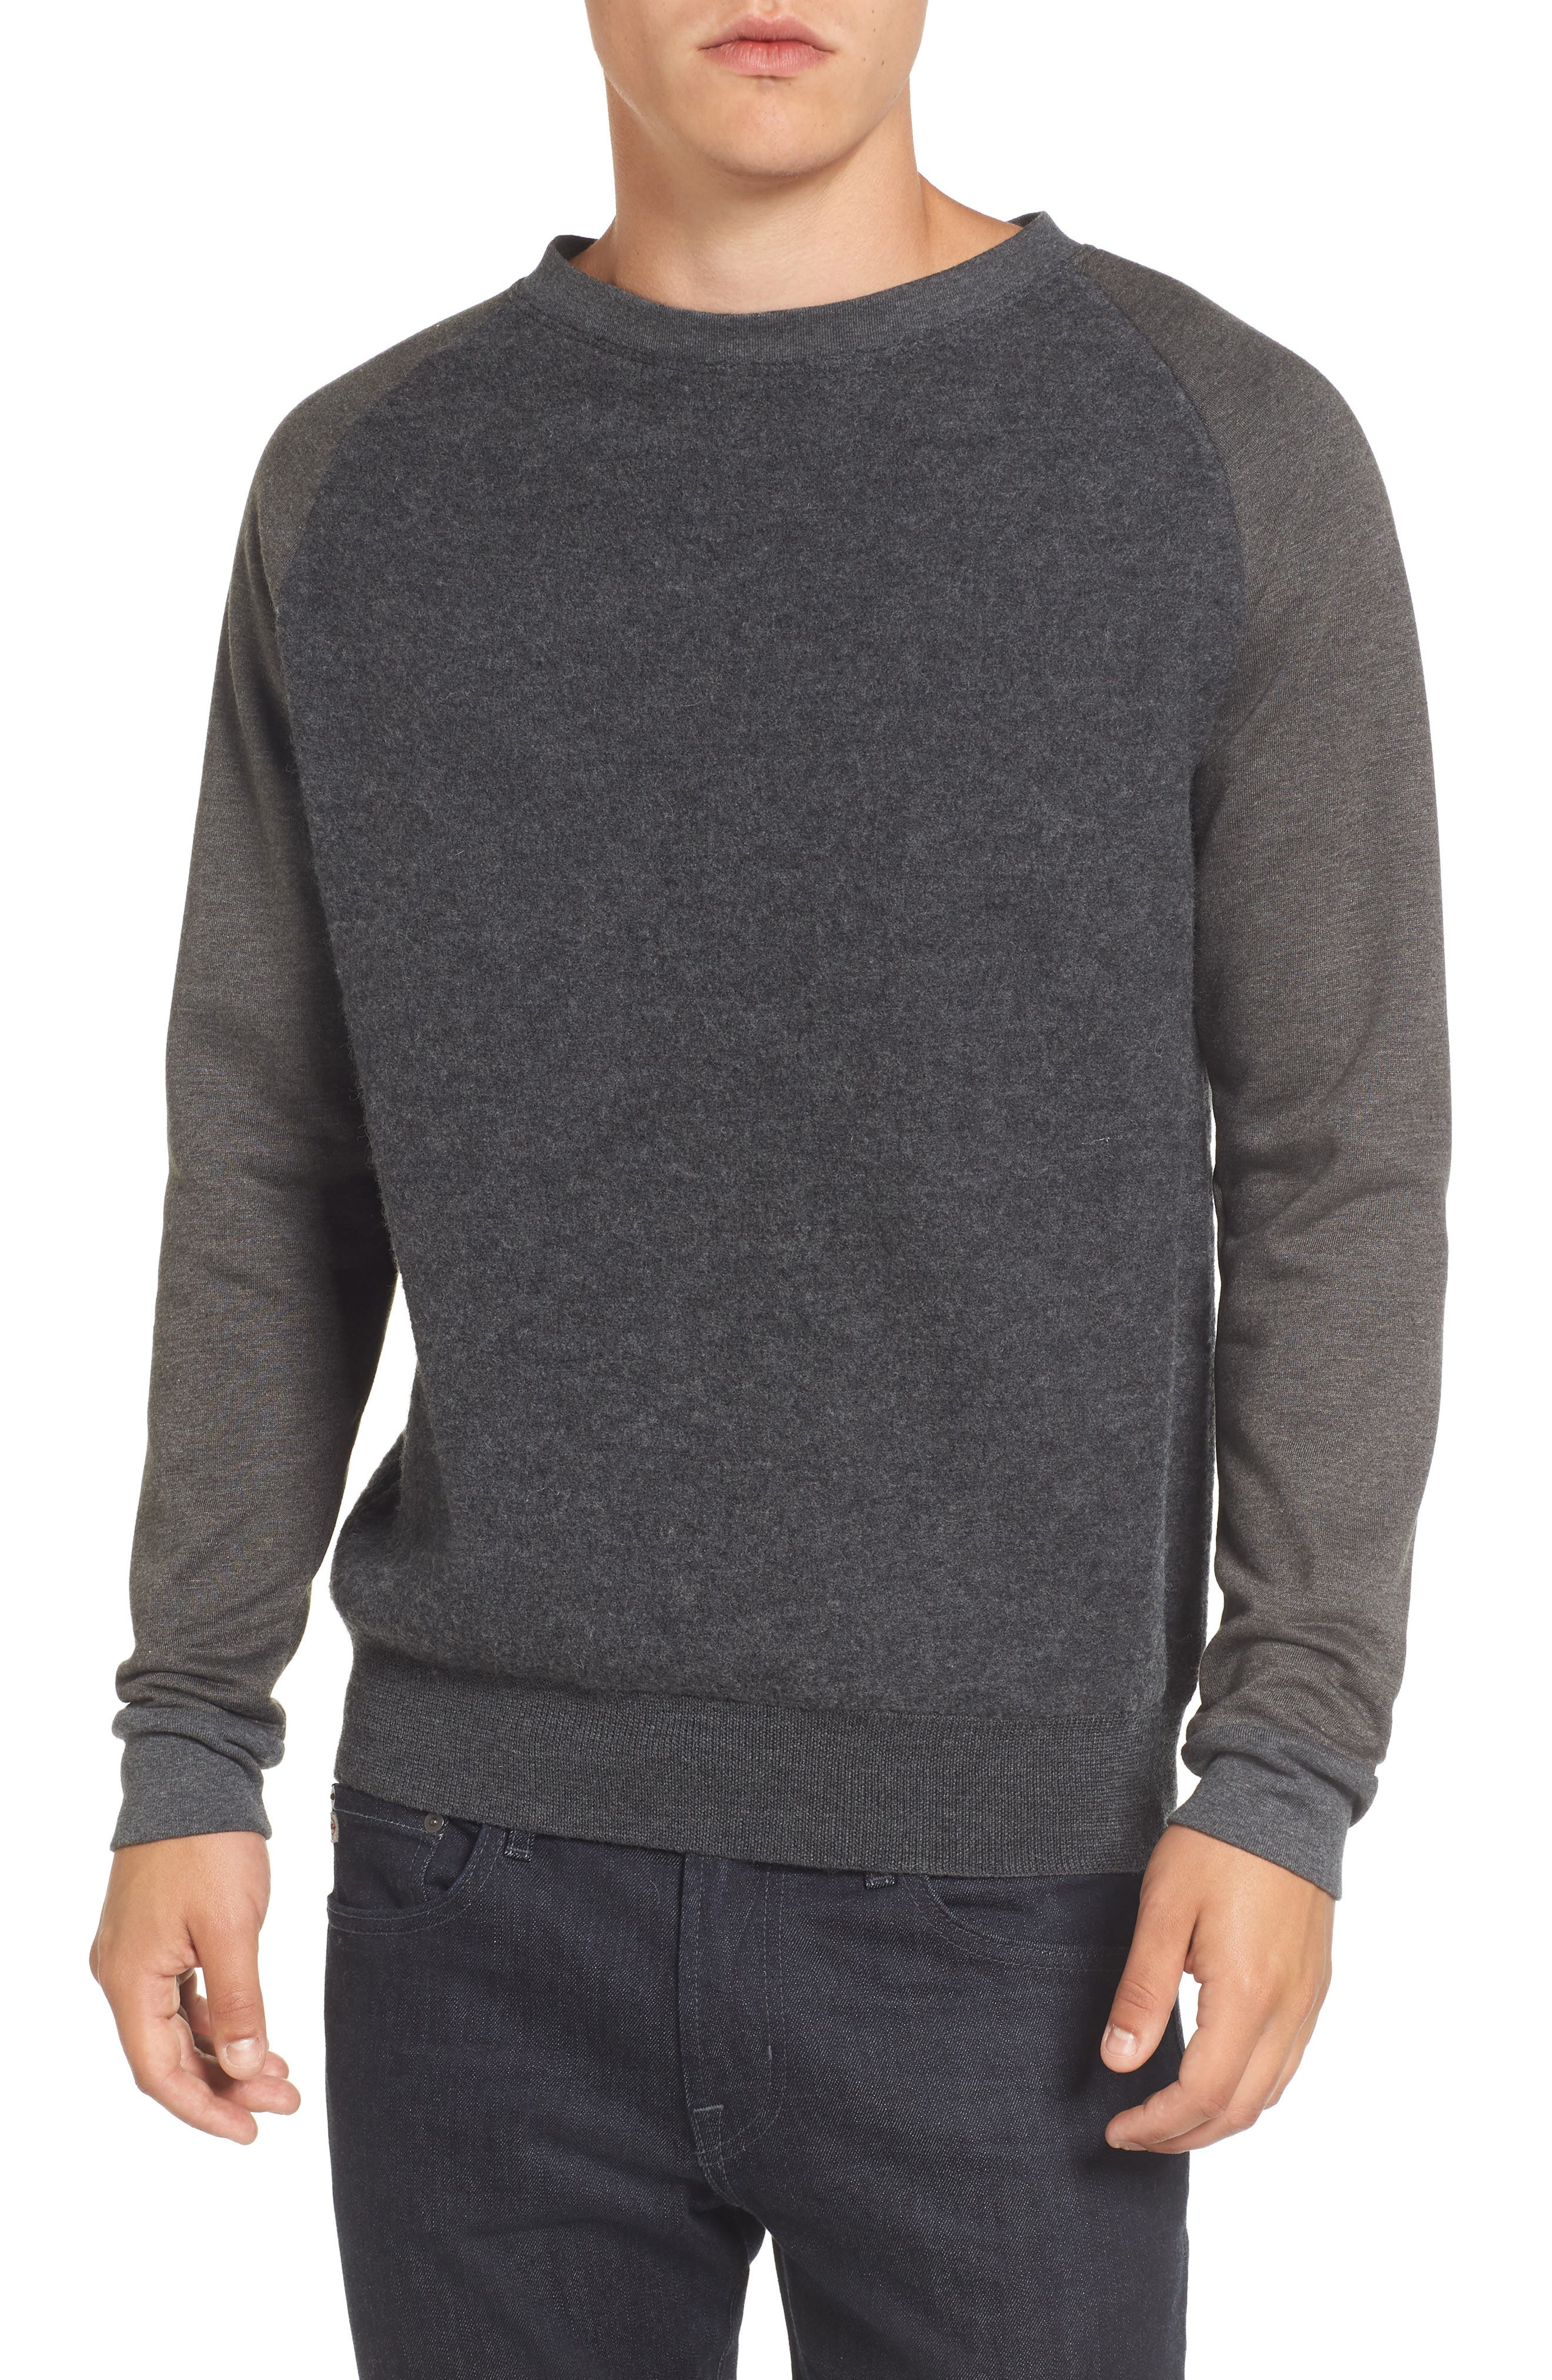 Alternate Image 1 Selected - French Connection Crewneck Sweater